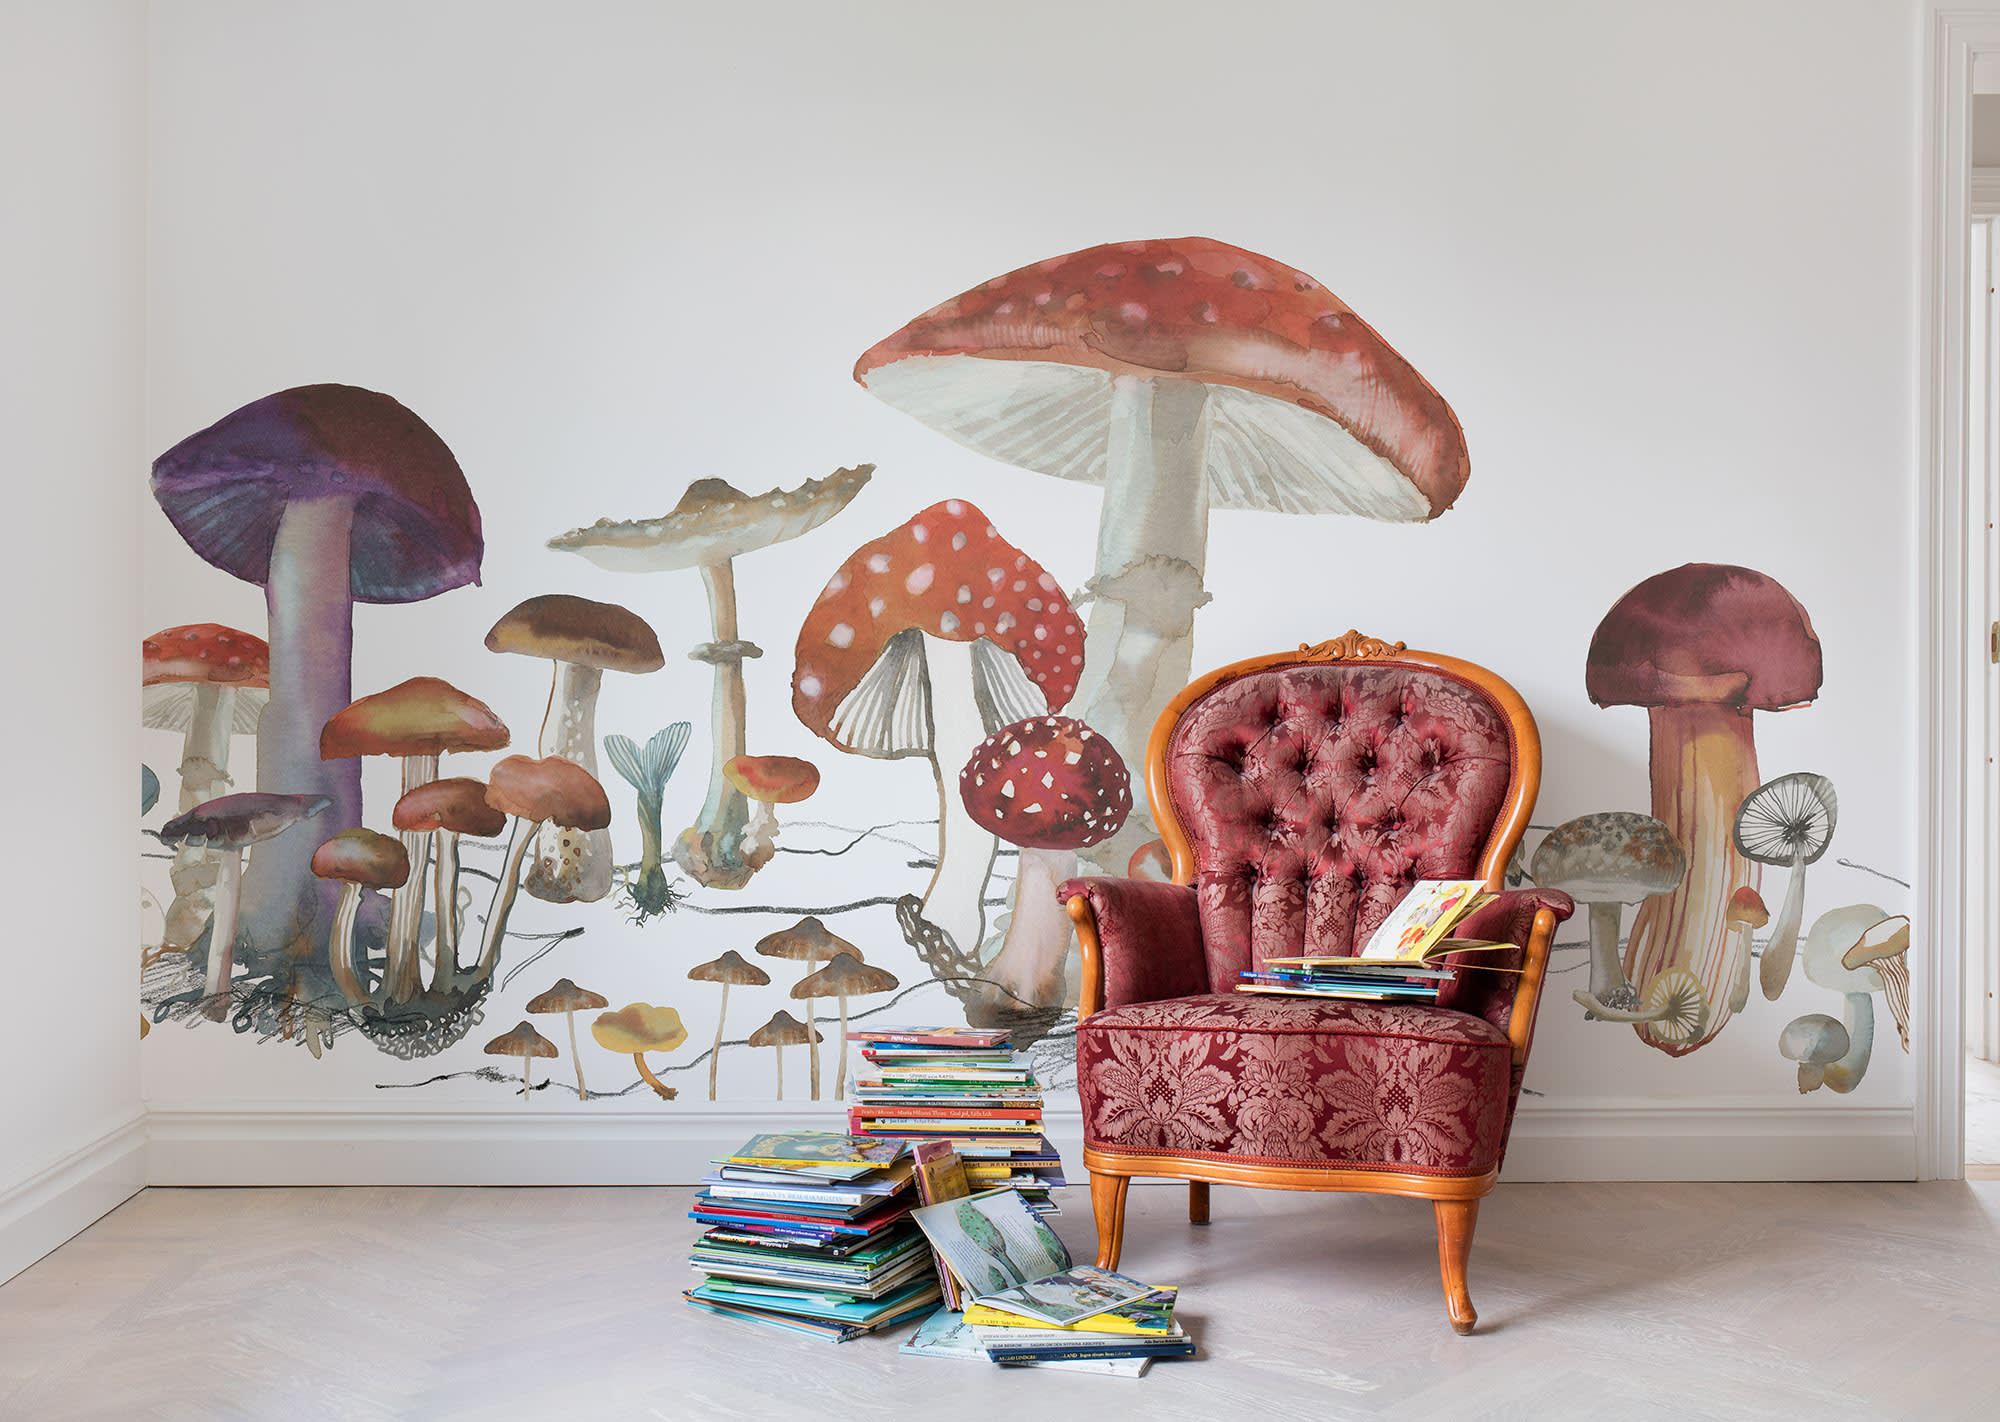 Bring storybook magic into your home